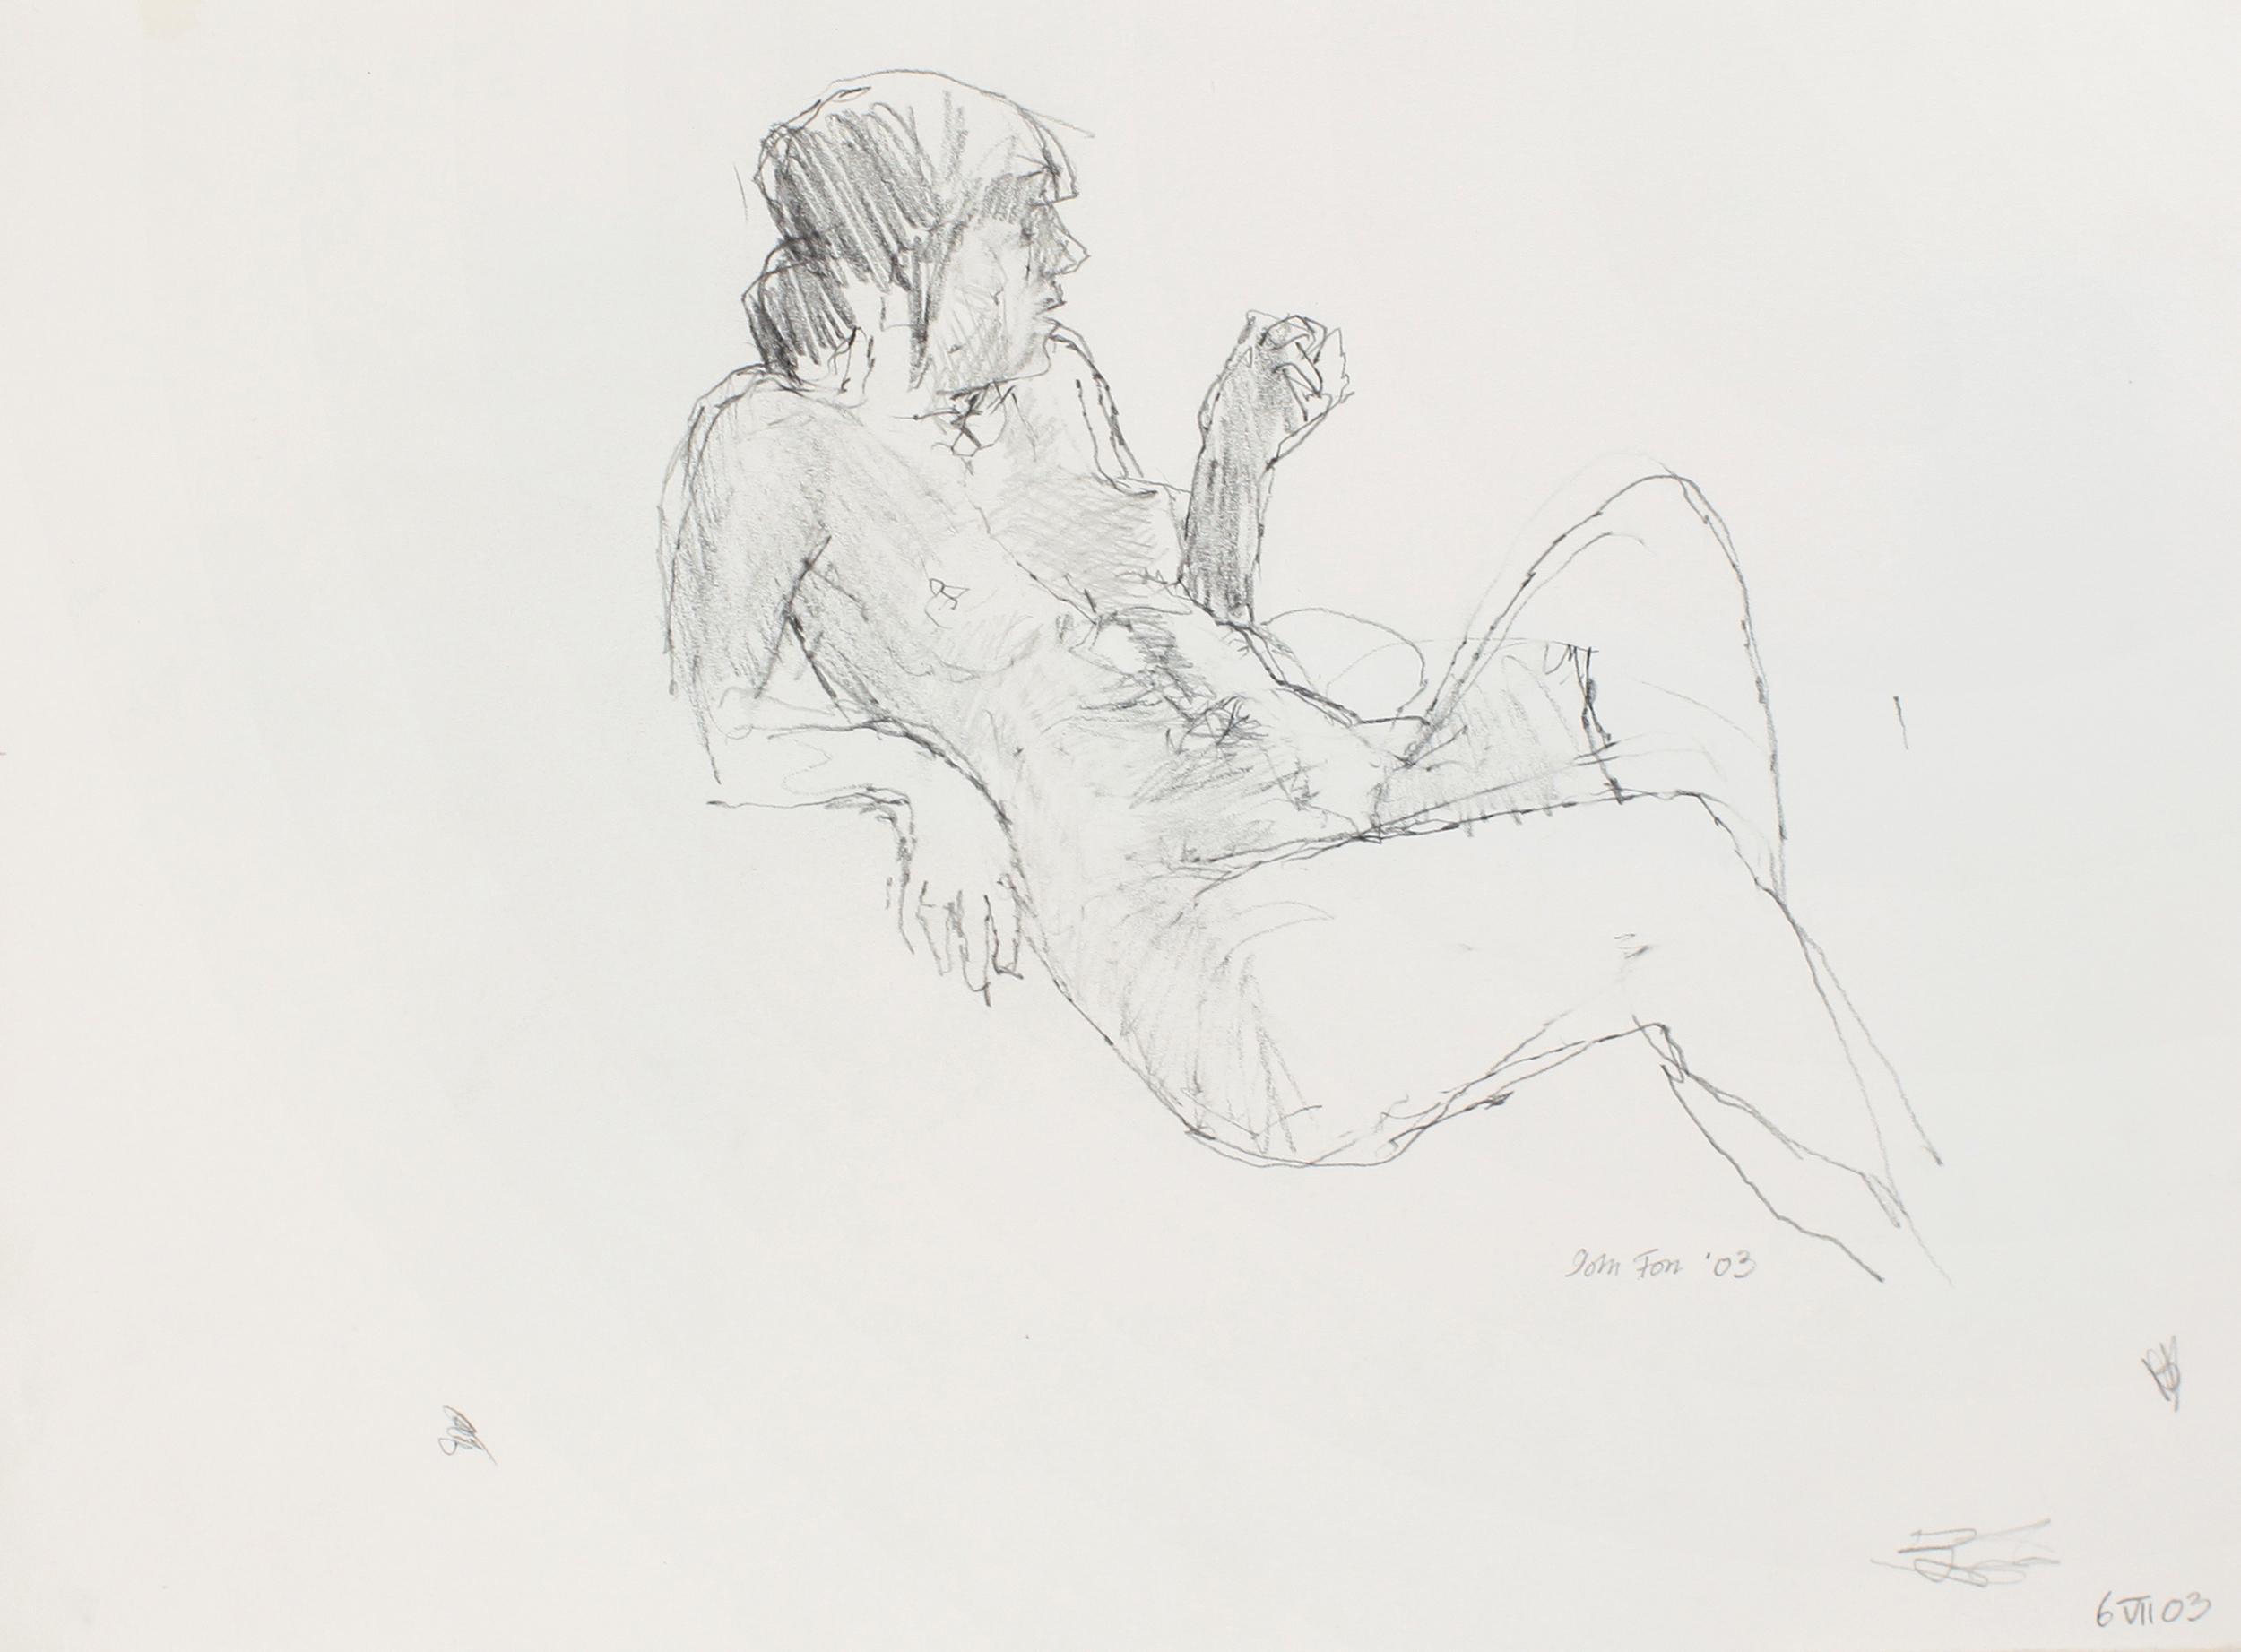 2003_Reclining_Nude_with_Raised_Arm_and_Leg_pencil_on_paper_11x15in_WPF499.jpg